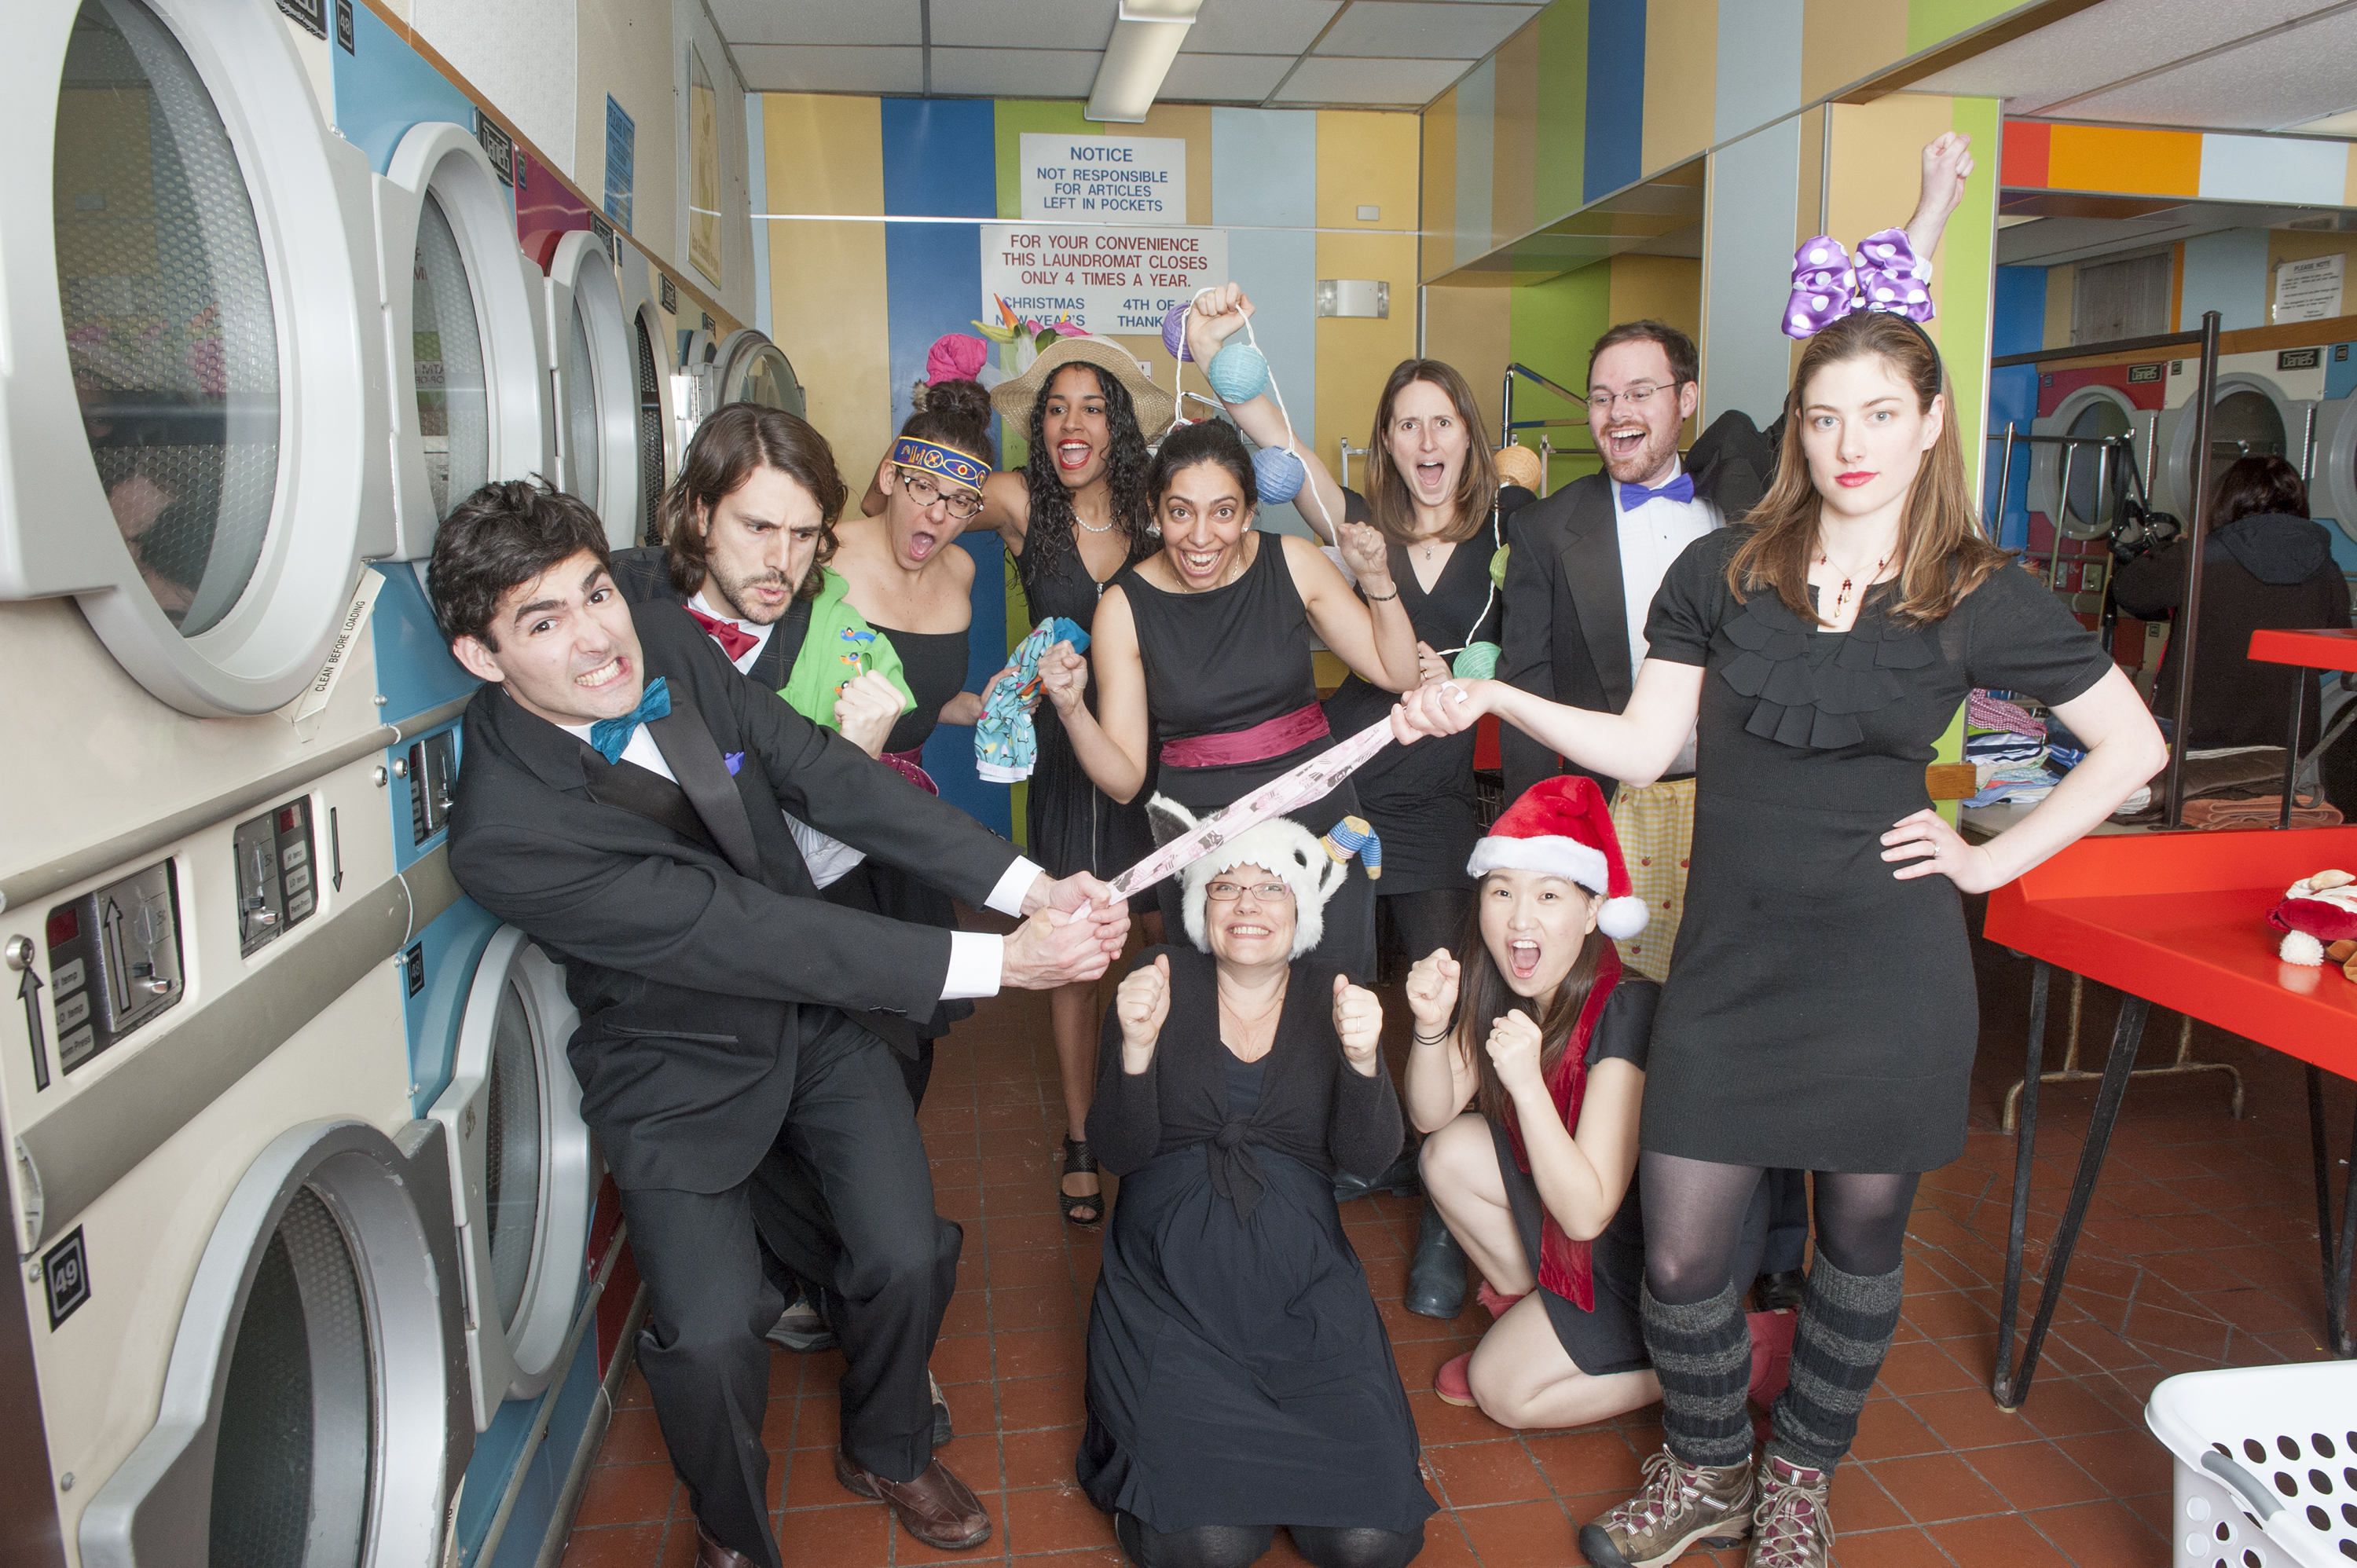 2013 - Laundromat Formal